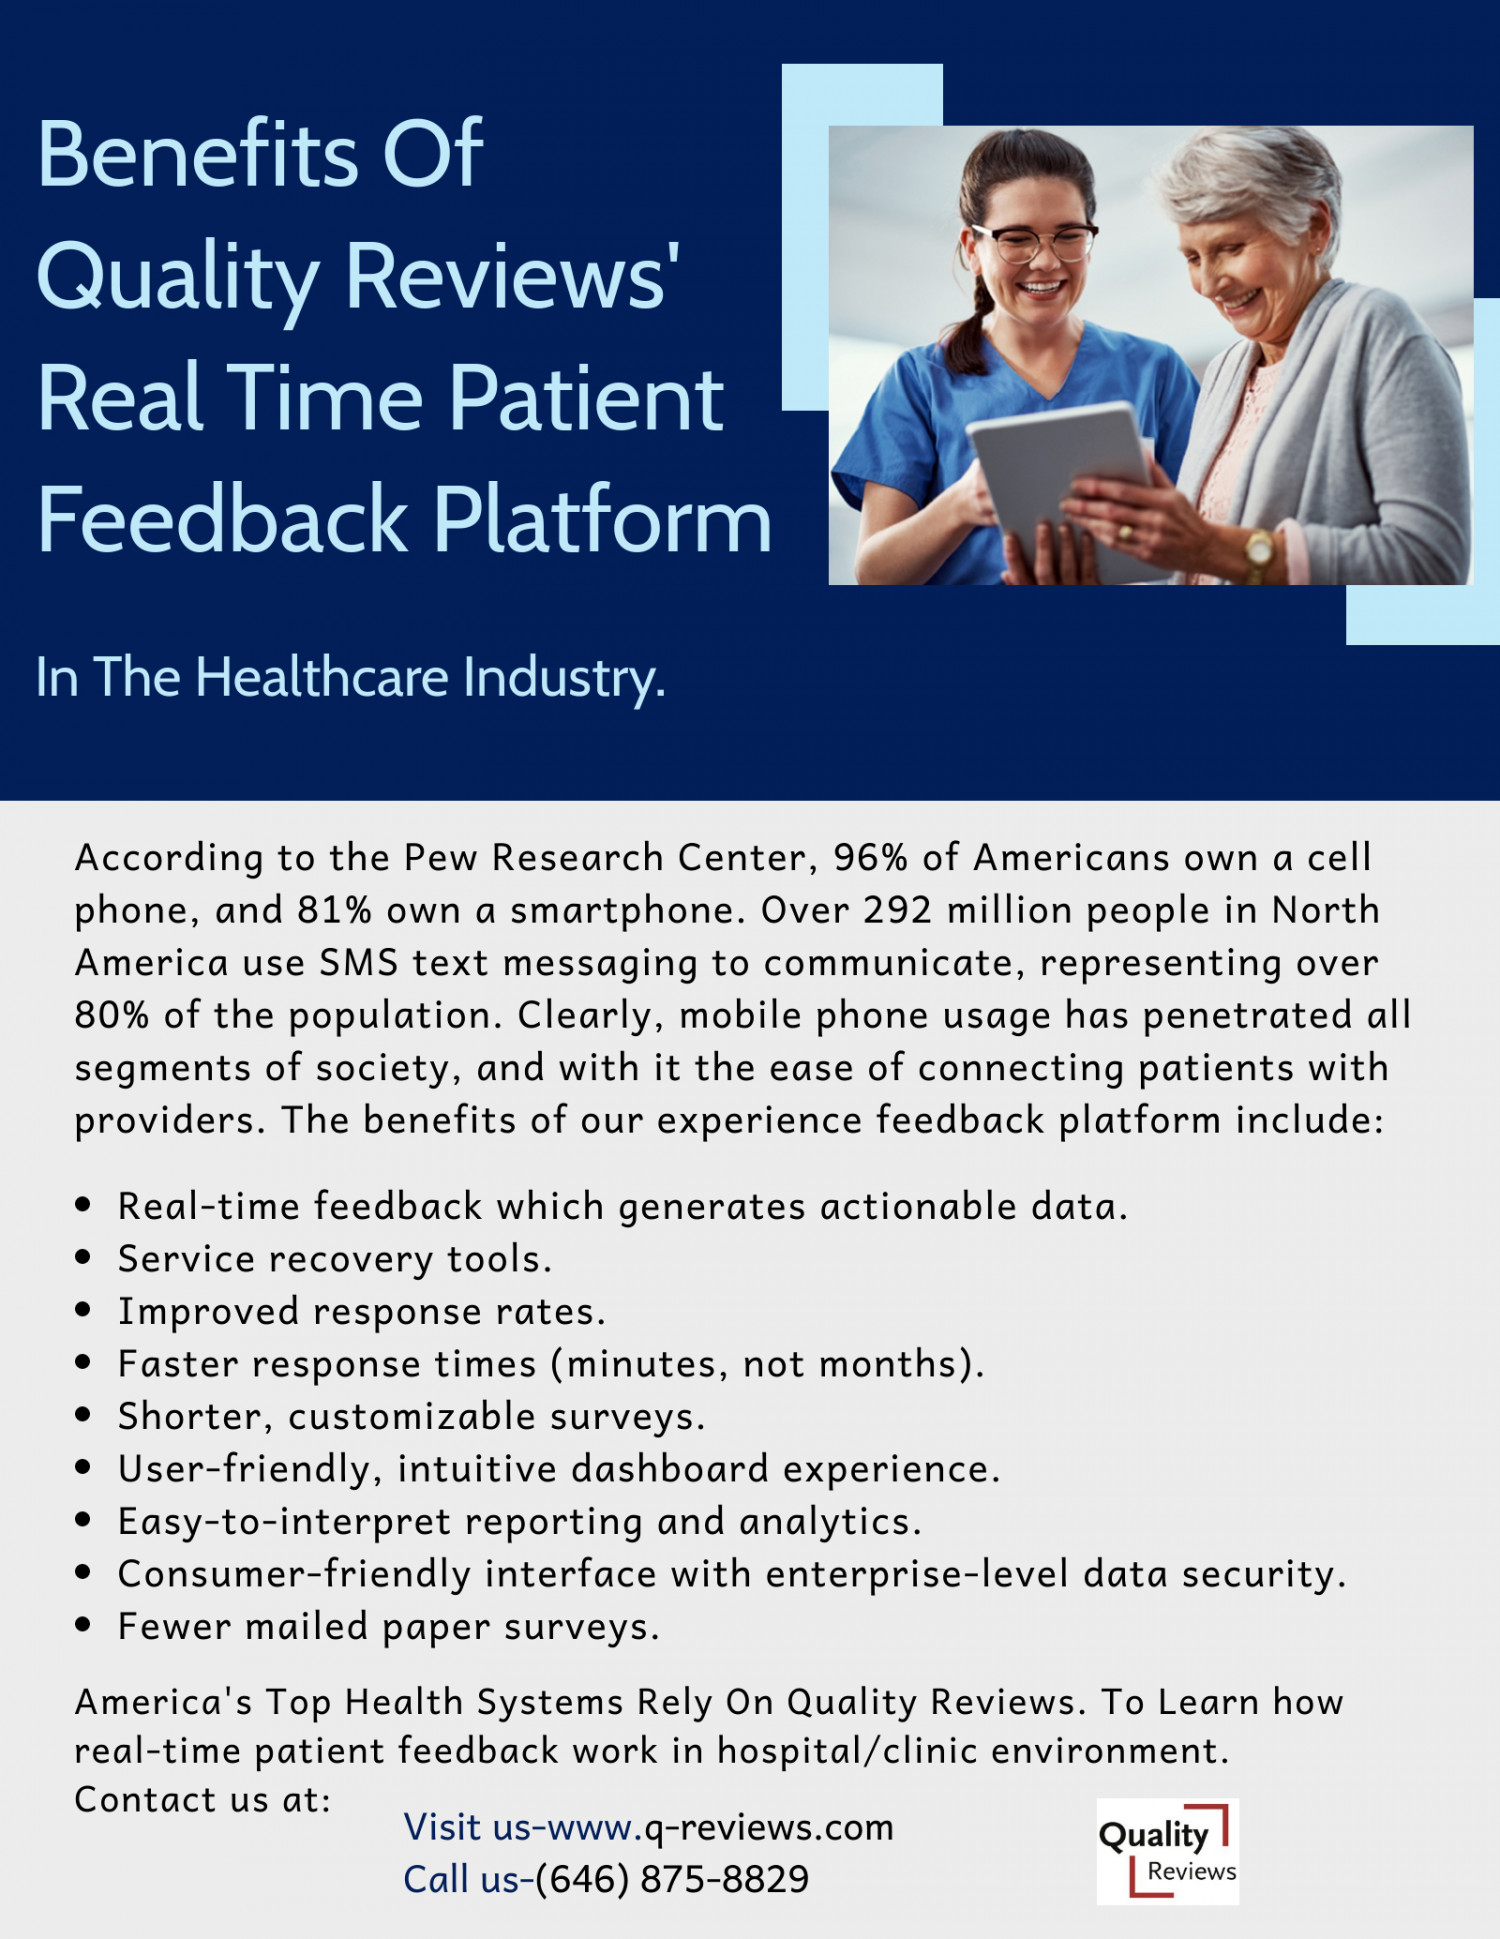 Benefits Of Quality Reviews' Real Time Patient Feedback Platform Infographic